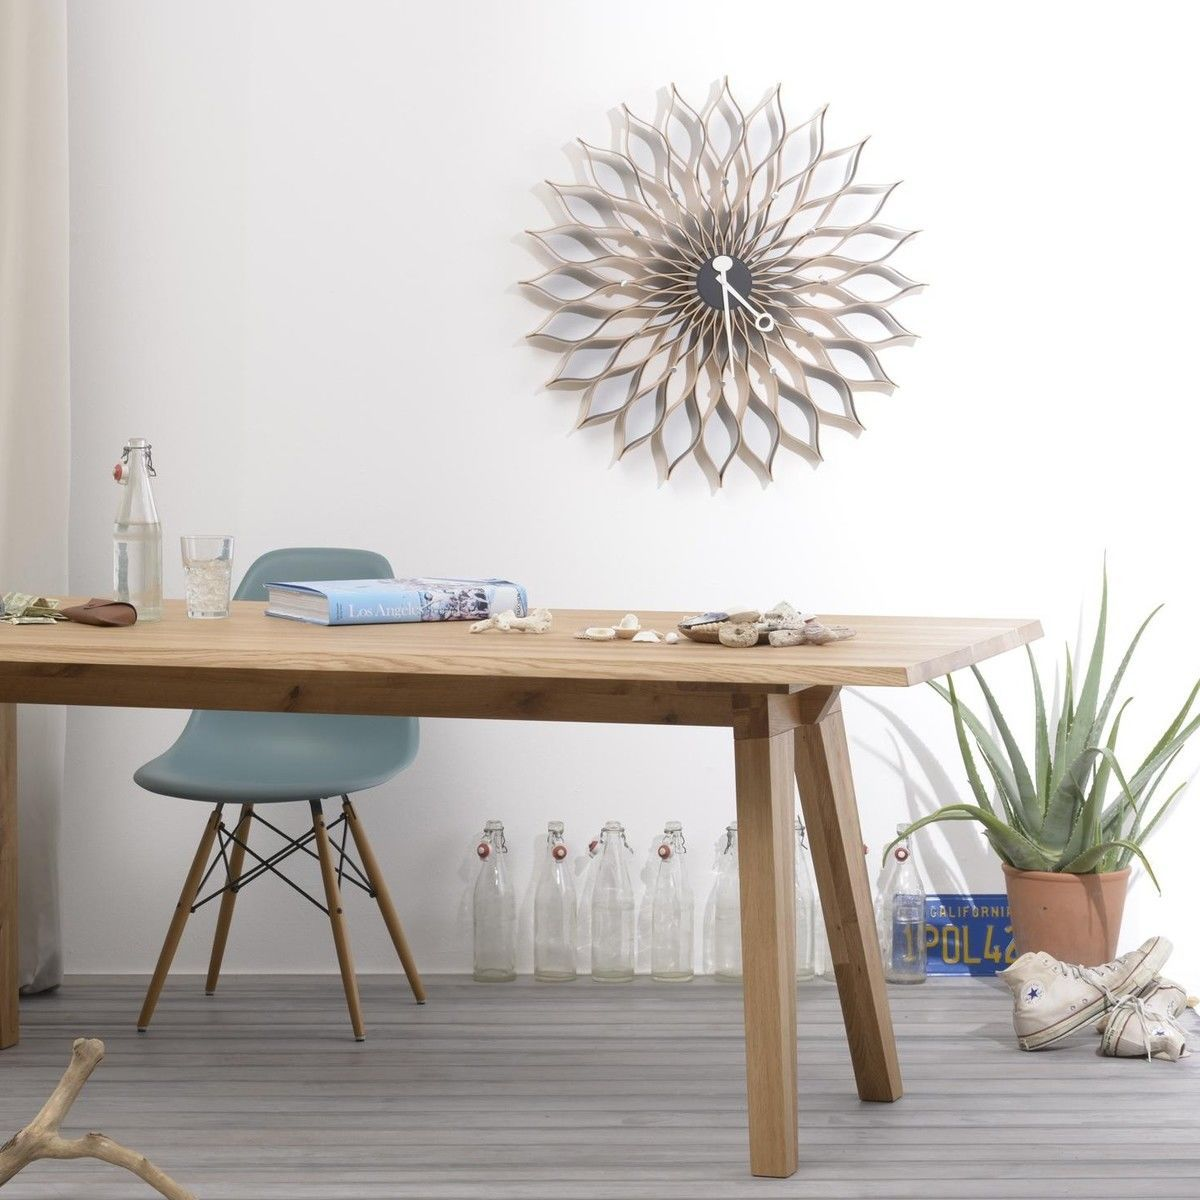 Pipe 3 led suspension lamp decor walther ambientedirect com - Adwood Nordic Dining Table Lightyears Orient Suspension Lamp